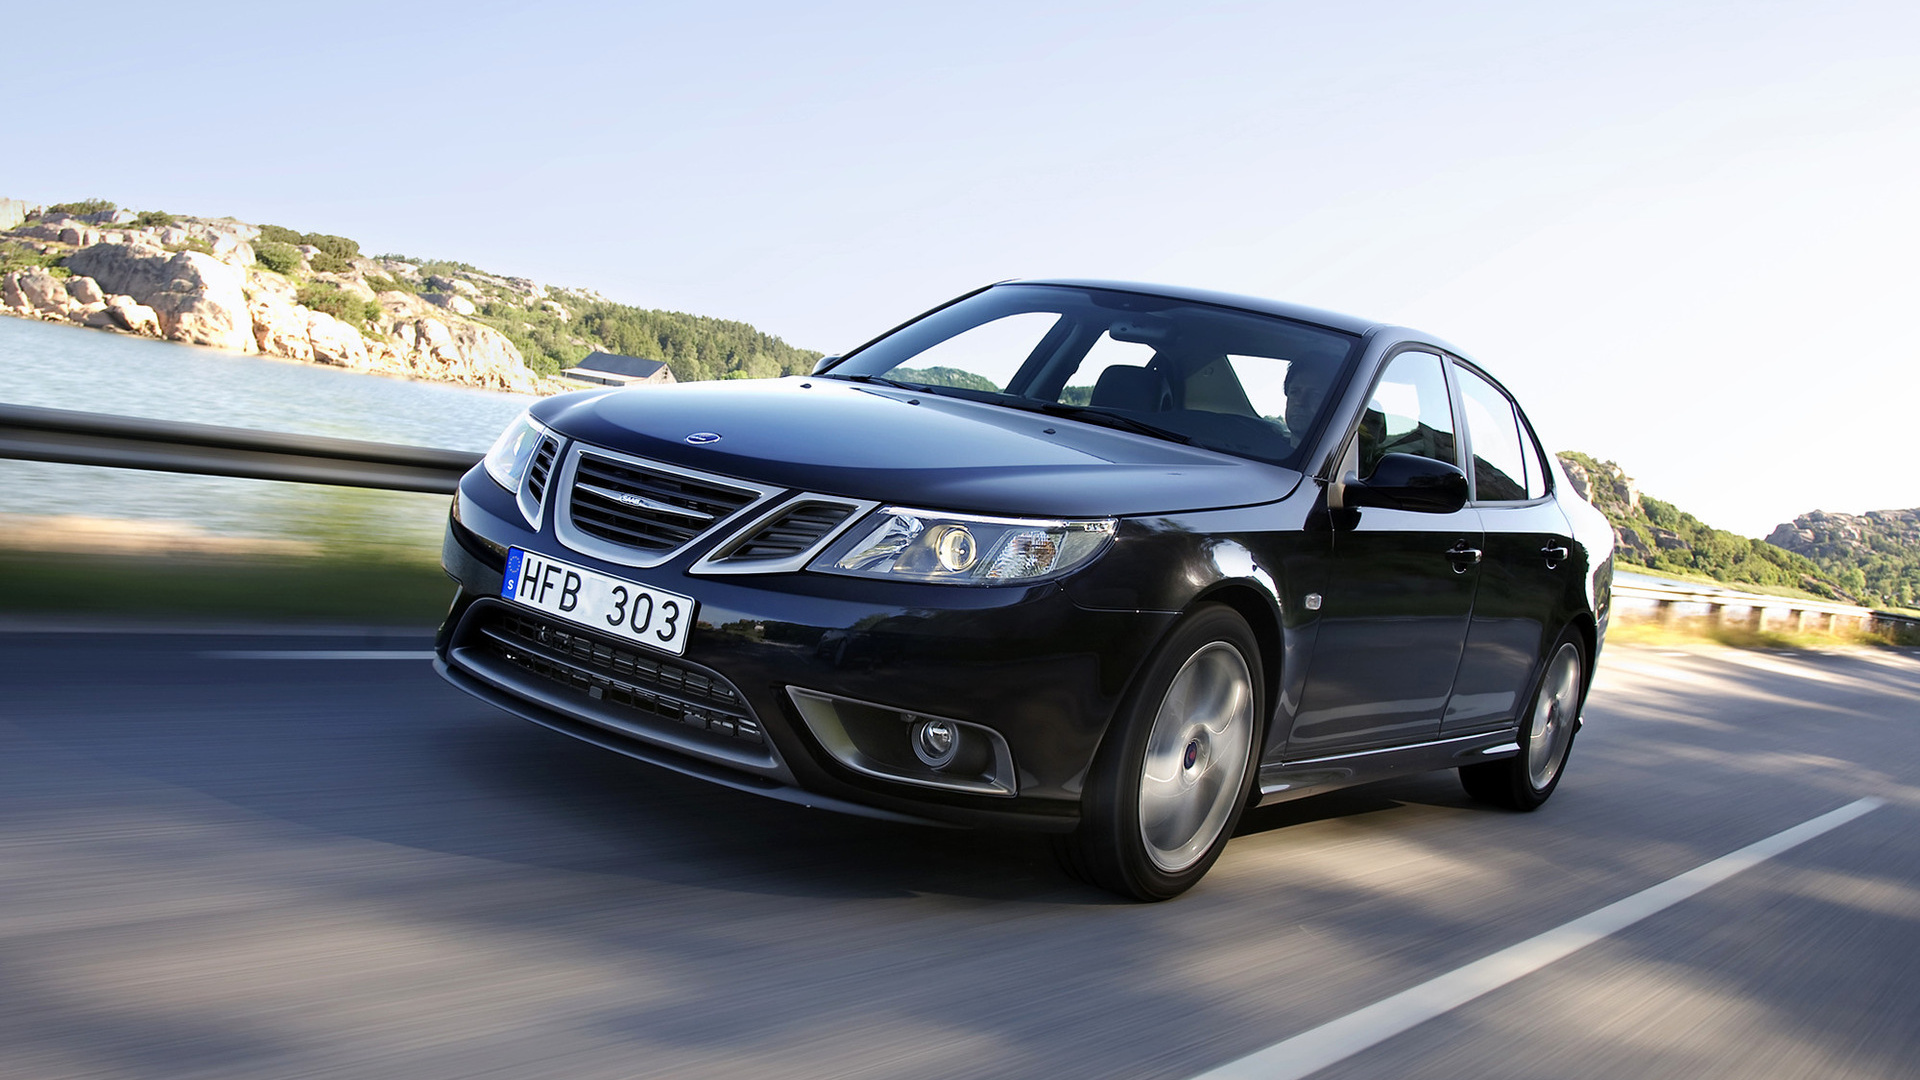 Saab 9 3 Turbo X Sport Sedan 2008 Wallpapers And Hd